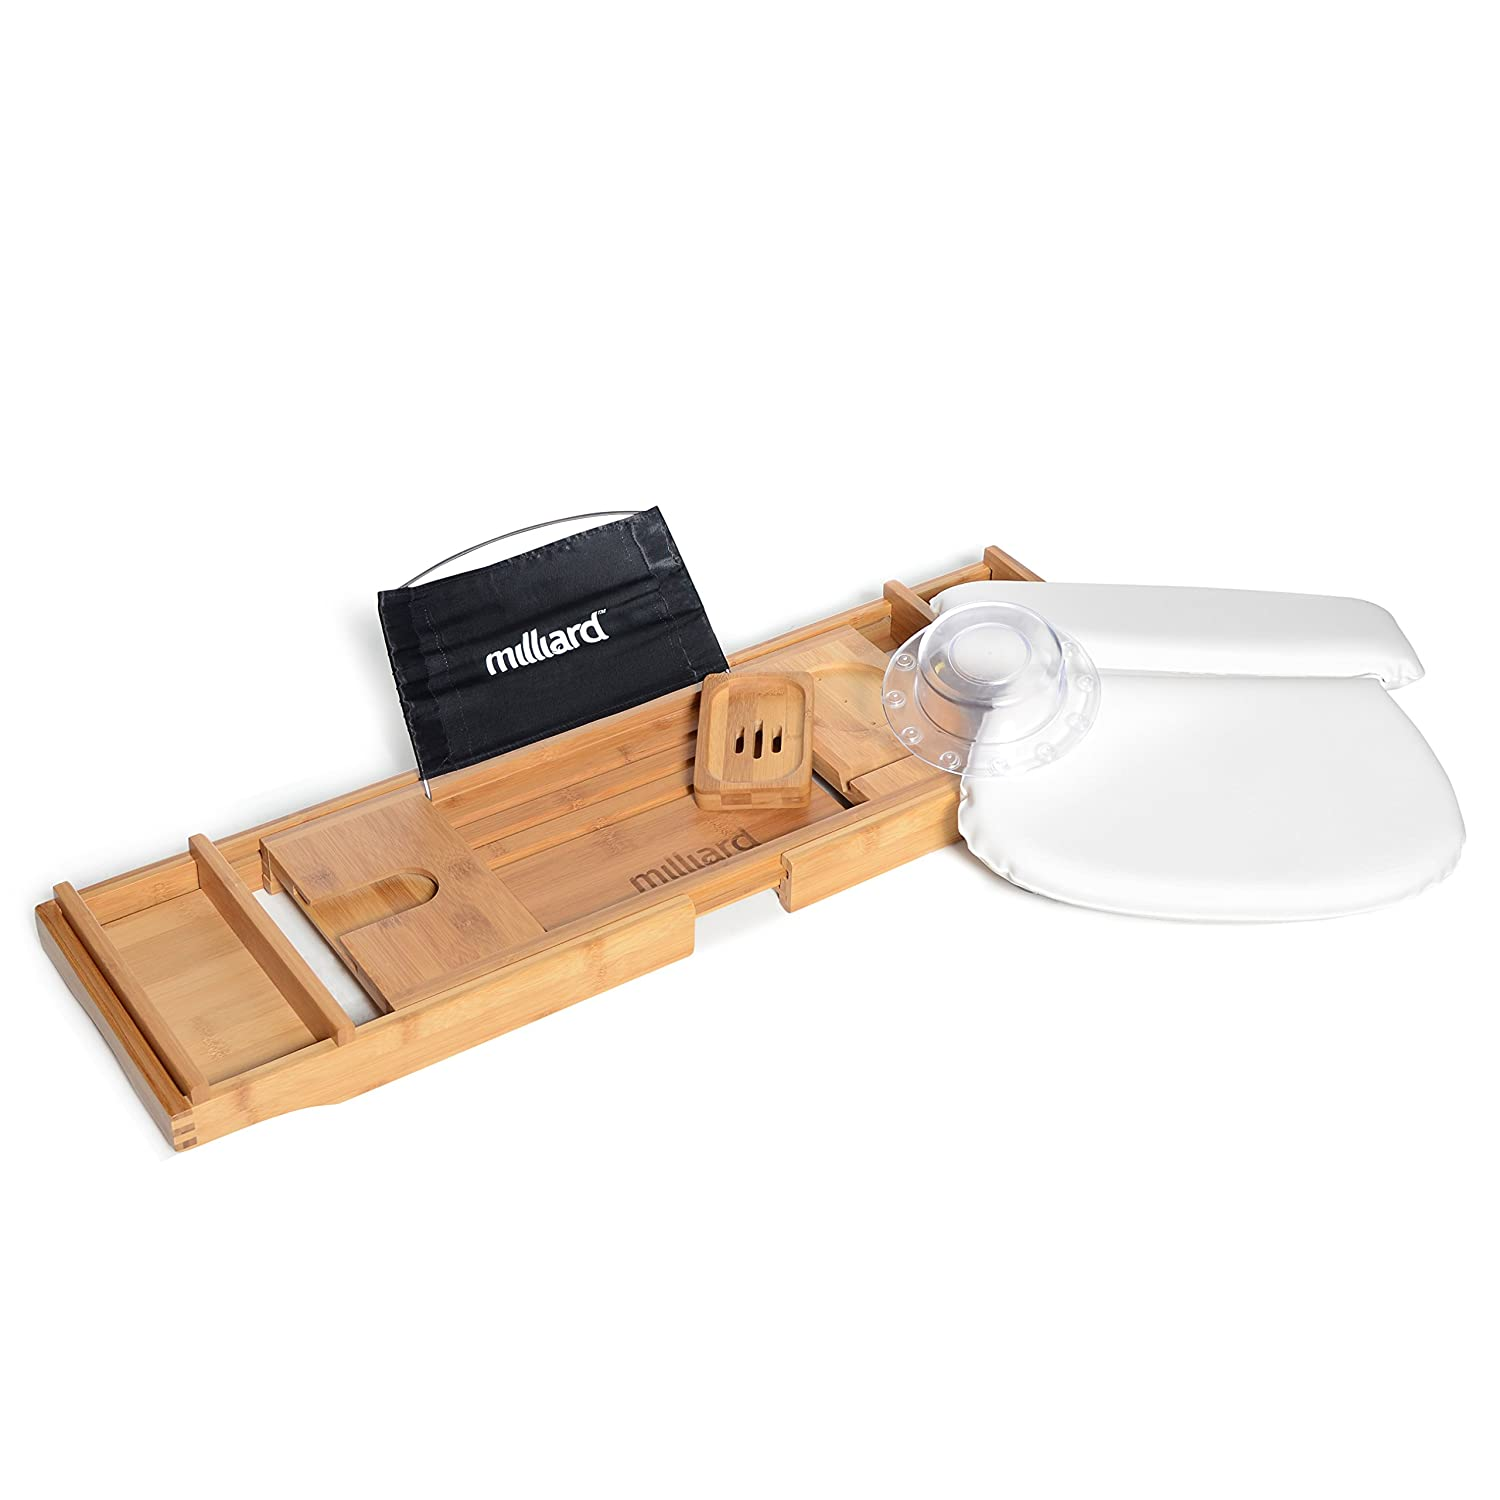 Milliard Ultimate Bath Spa Kit, Includes Bamboo Bath Caddy Tray, Suction Bath Pillow & Overflow Bathtub Drain Cover Set